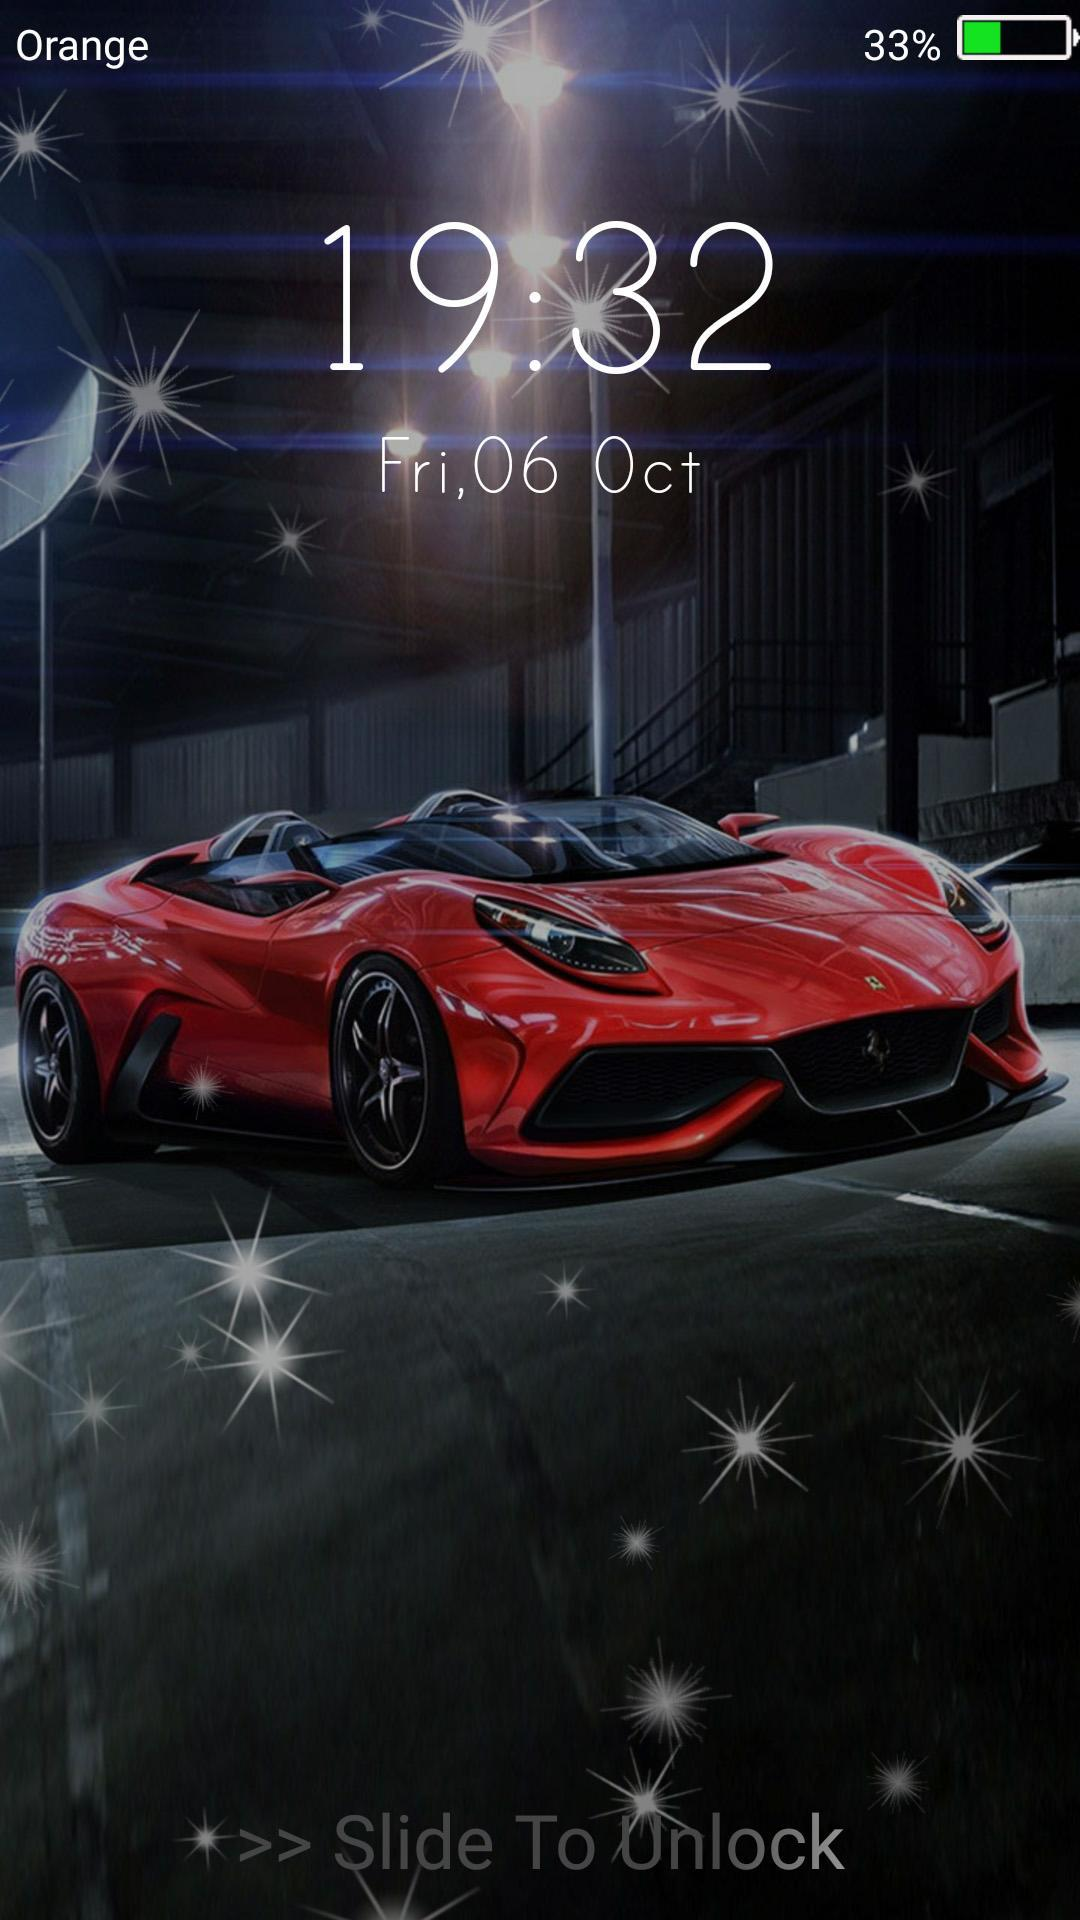 Sport Cars Live Wallpaper Lock Screen For Android Apk